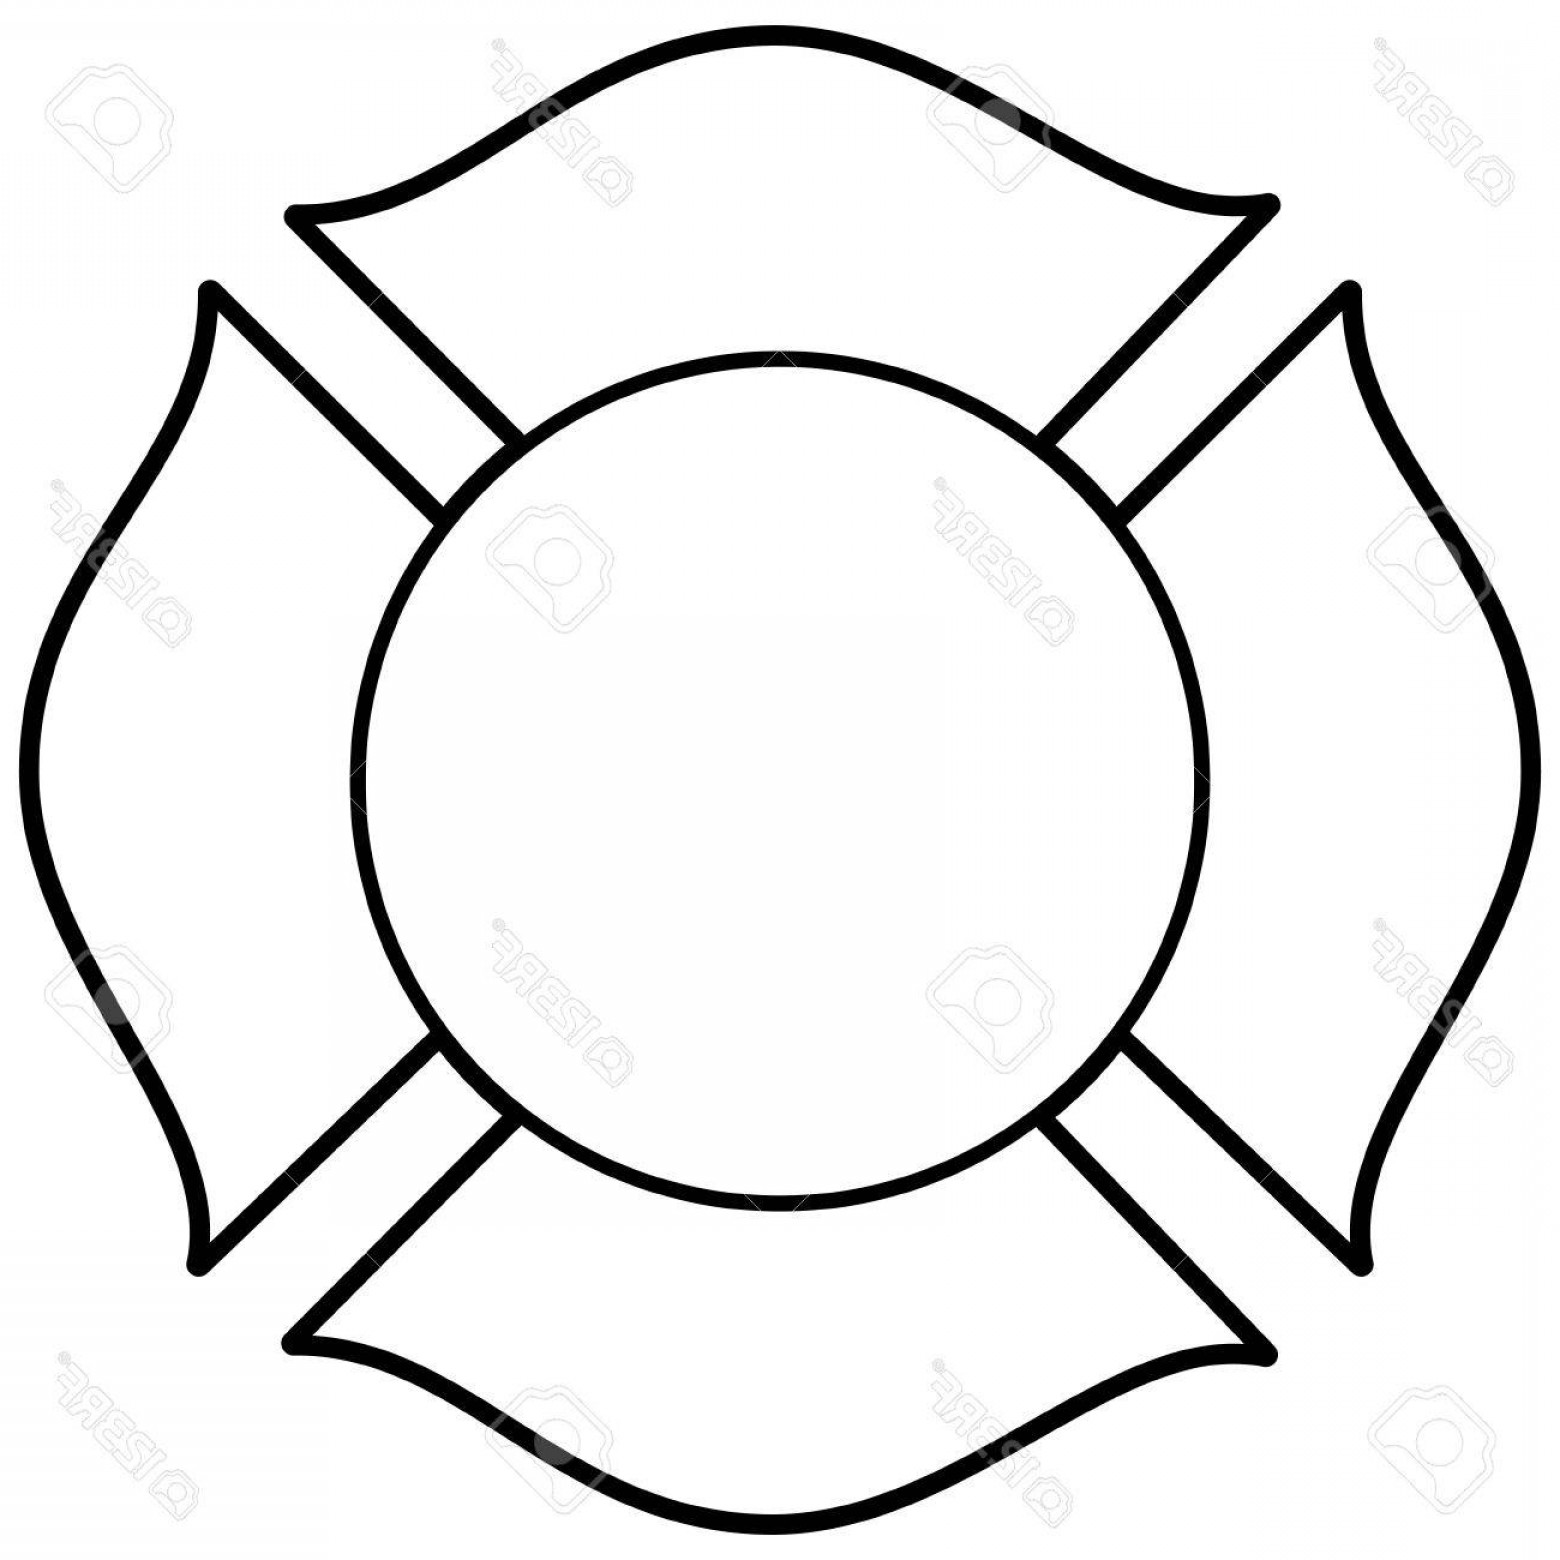 Fire Maltese Vector: Photostock Vector Firefighter Maltese Cross Illustration